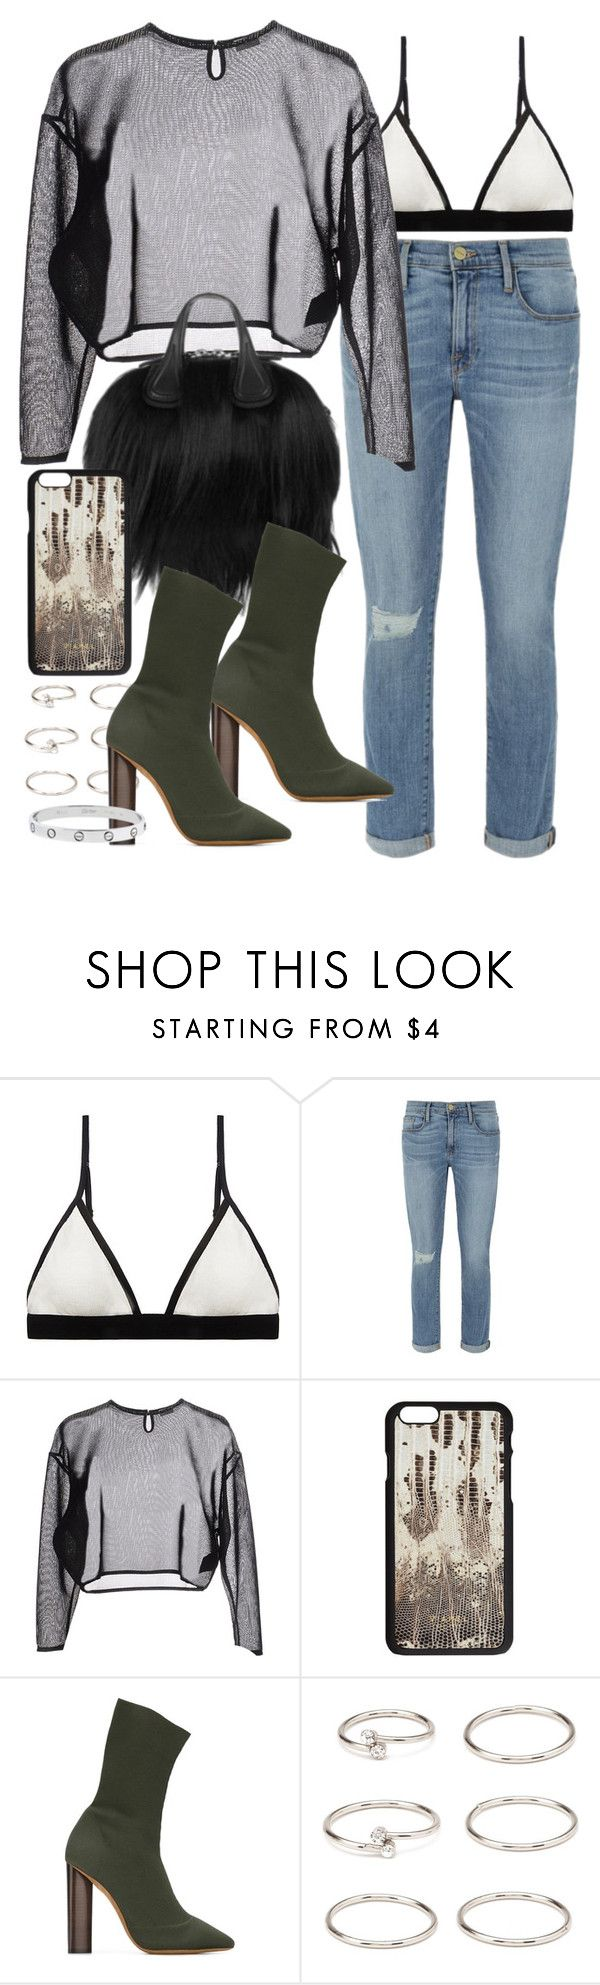 """Sin título #4013"" by hellomissapple ❤ liked on Polyvore featuring Sloane & Tate, Frame Denim, Yves Saint Laurent, Givenchy, adidas Originals, Forever 21 and Cartier"